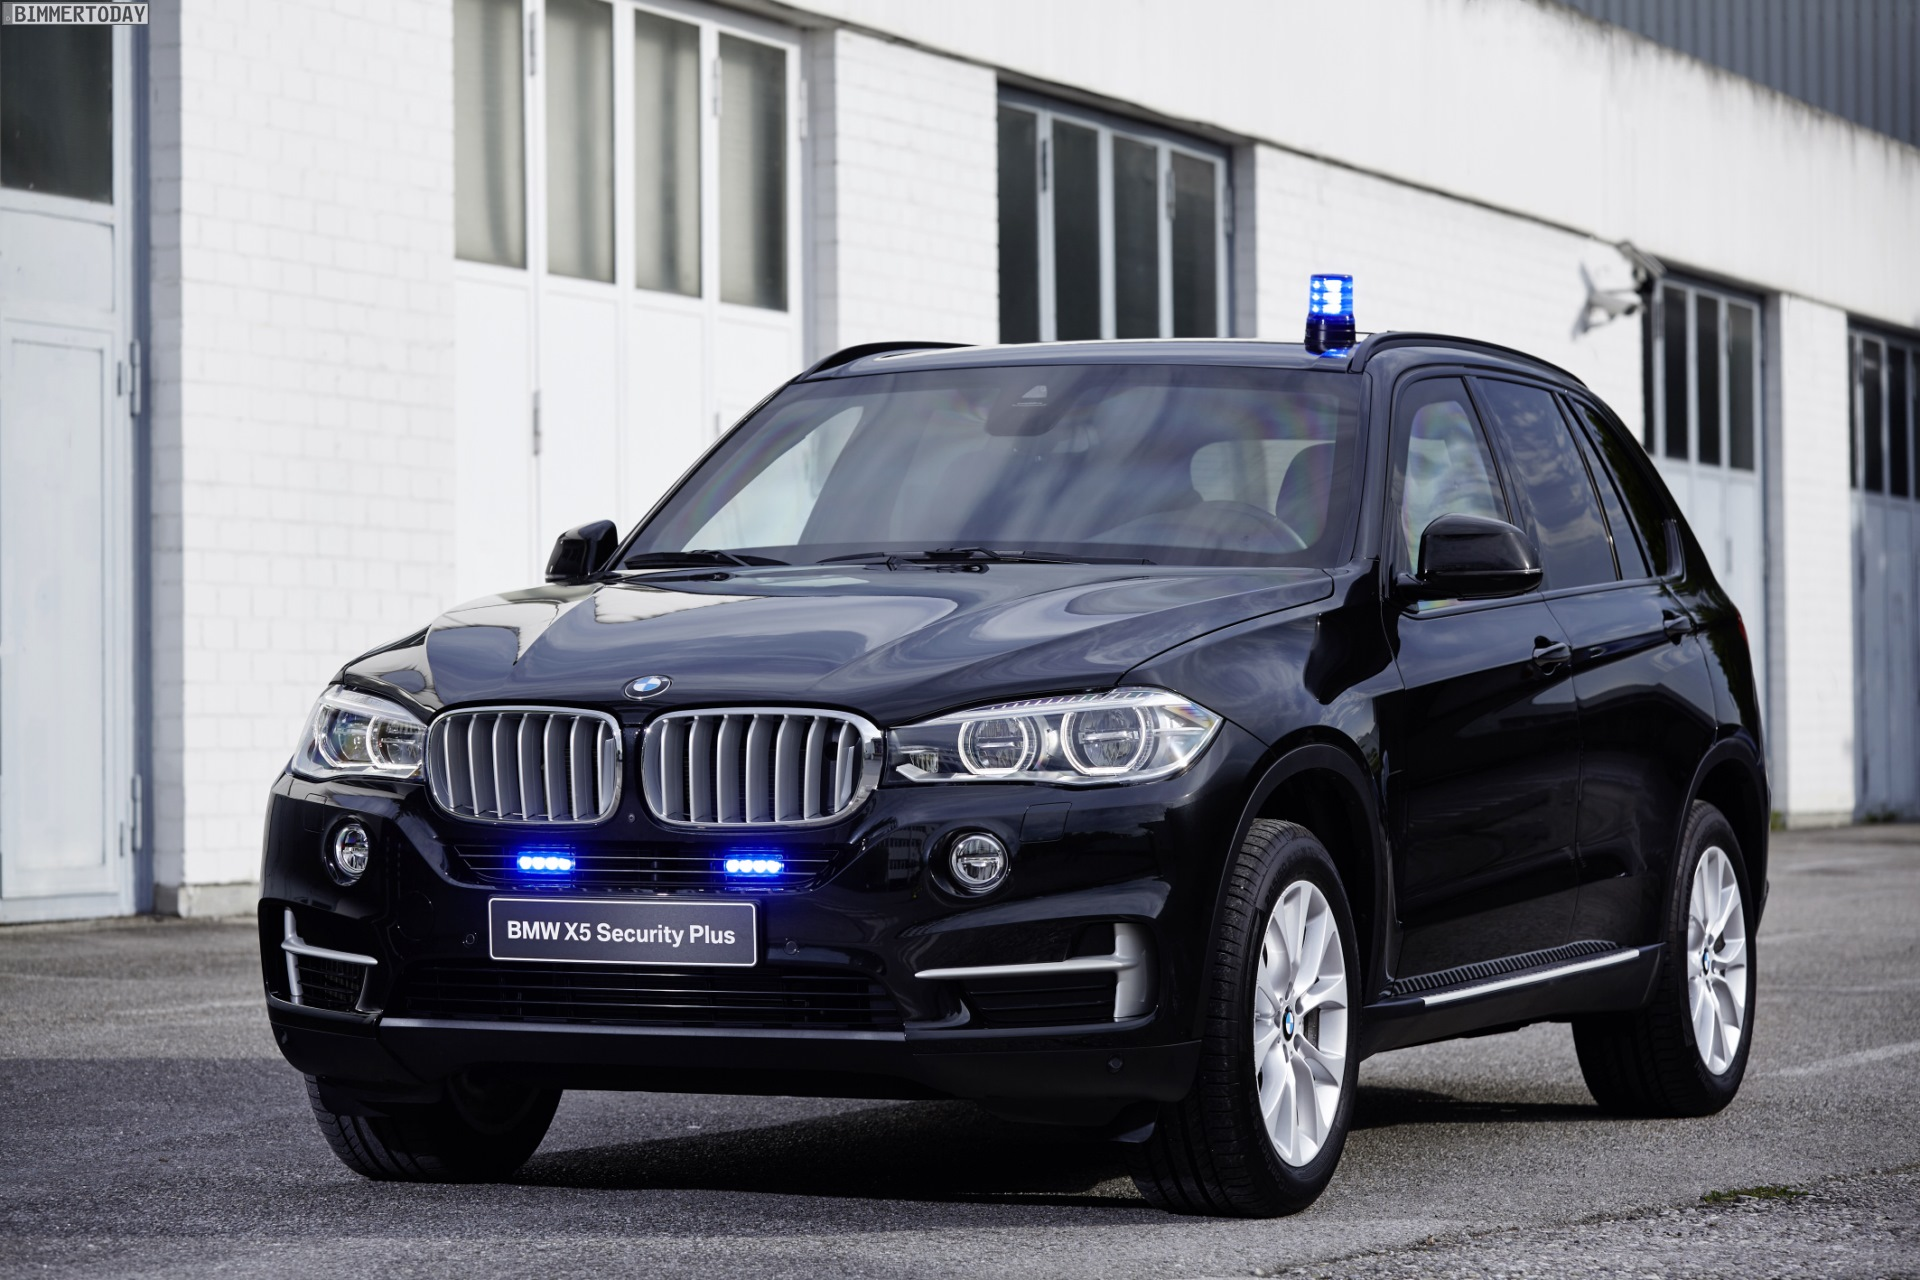 Bmw X5 Security Plus Shown At Gpec 2016 In Leipzig